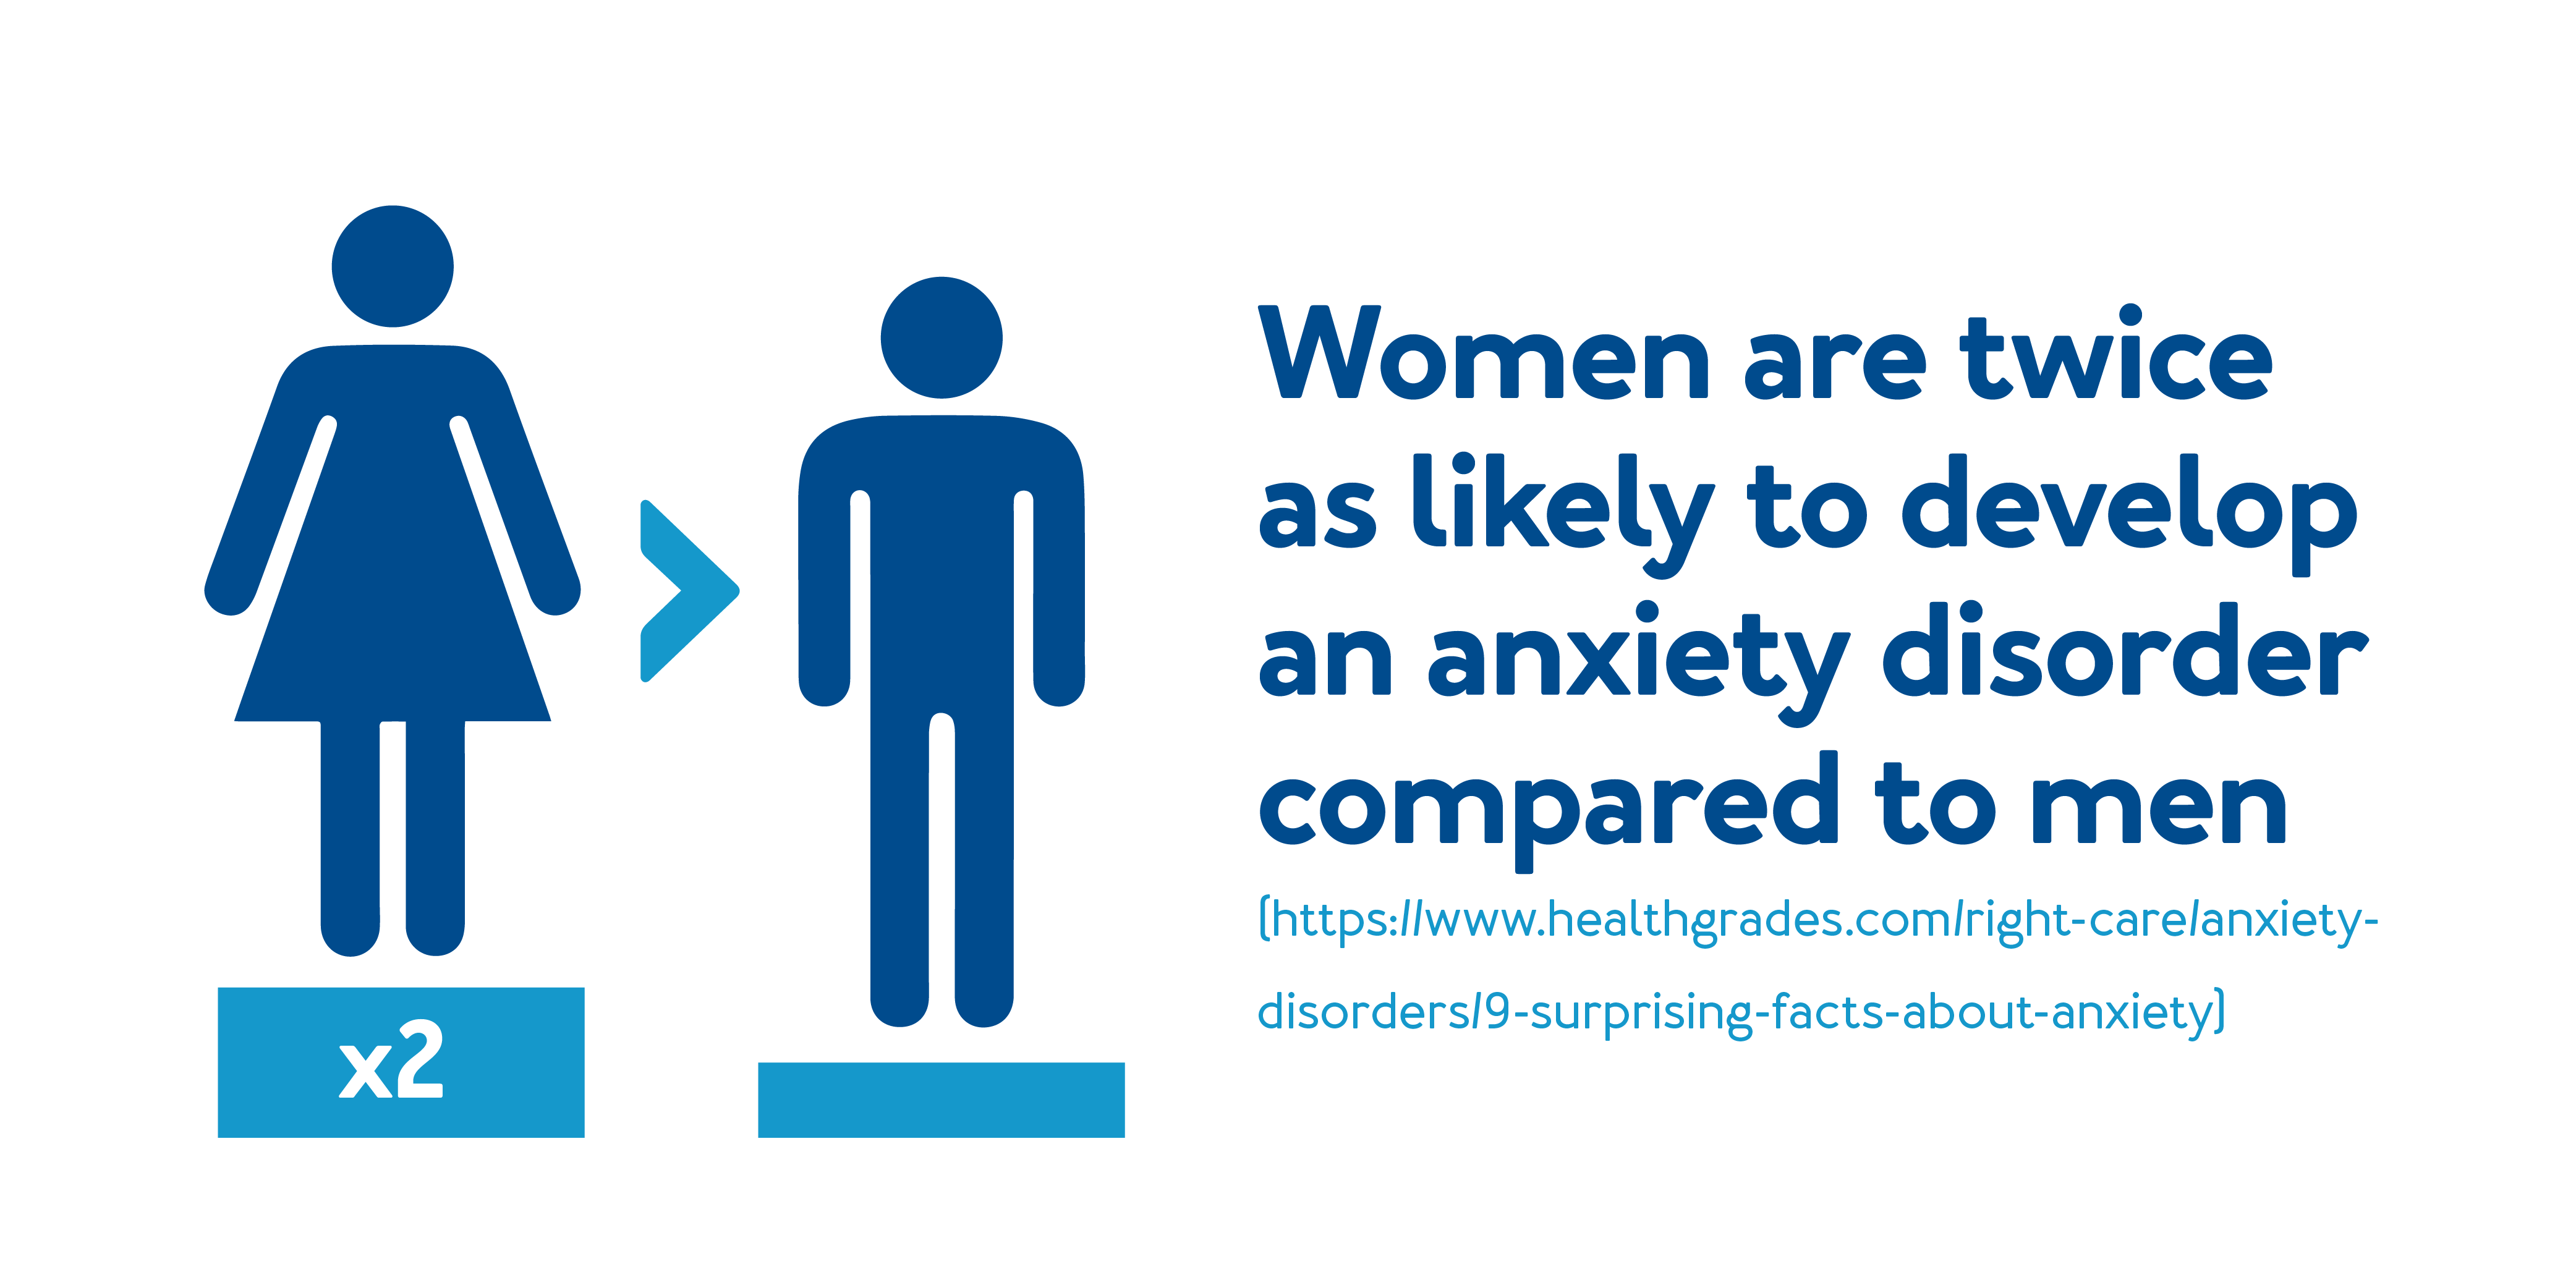 Women are twice as likely to develop an anxiety disorder compared to men.